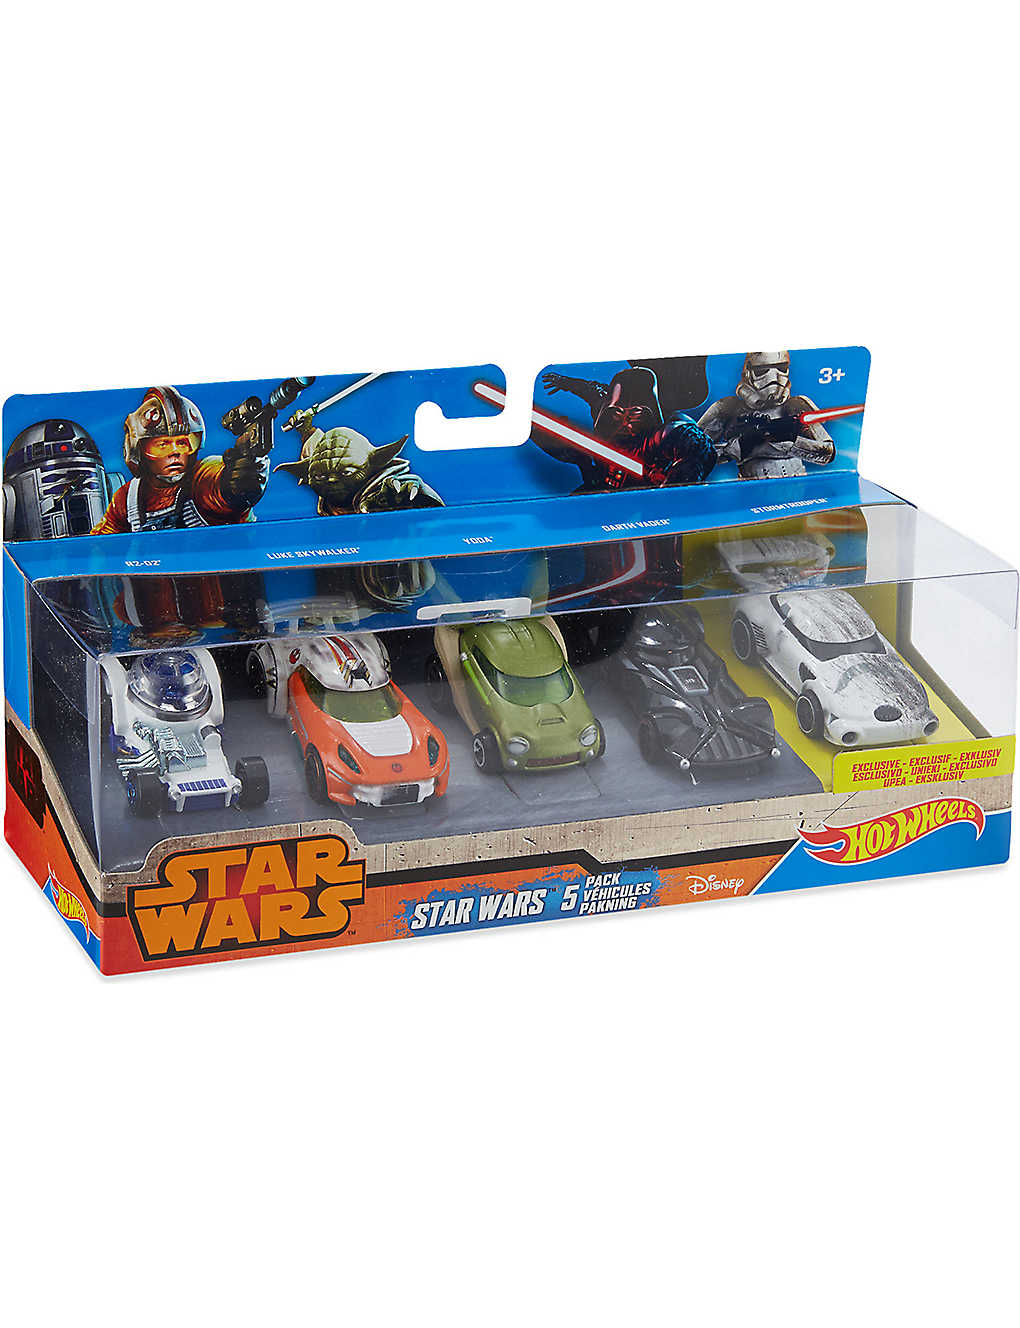 HOT WHEELS: Star Wars vehicles five-pack